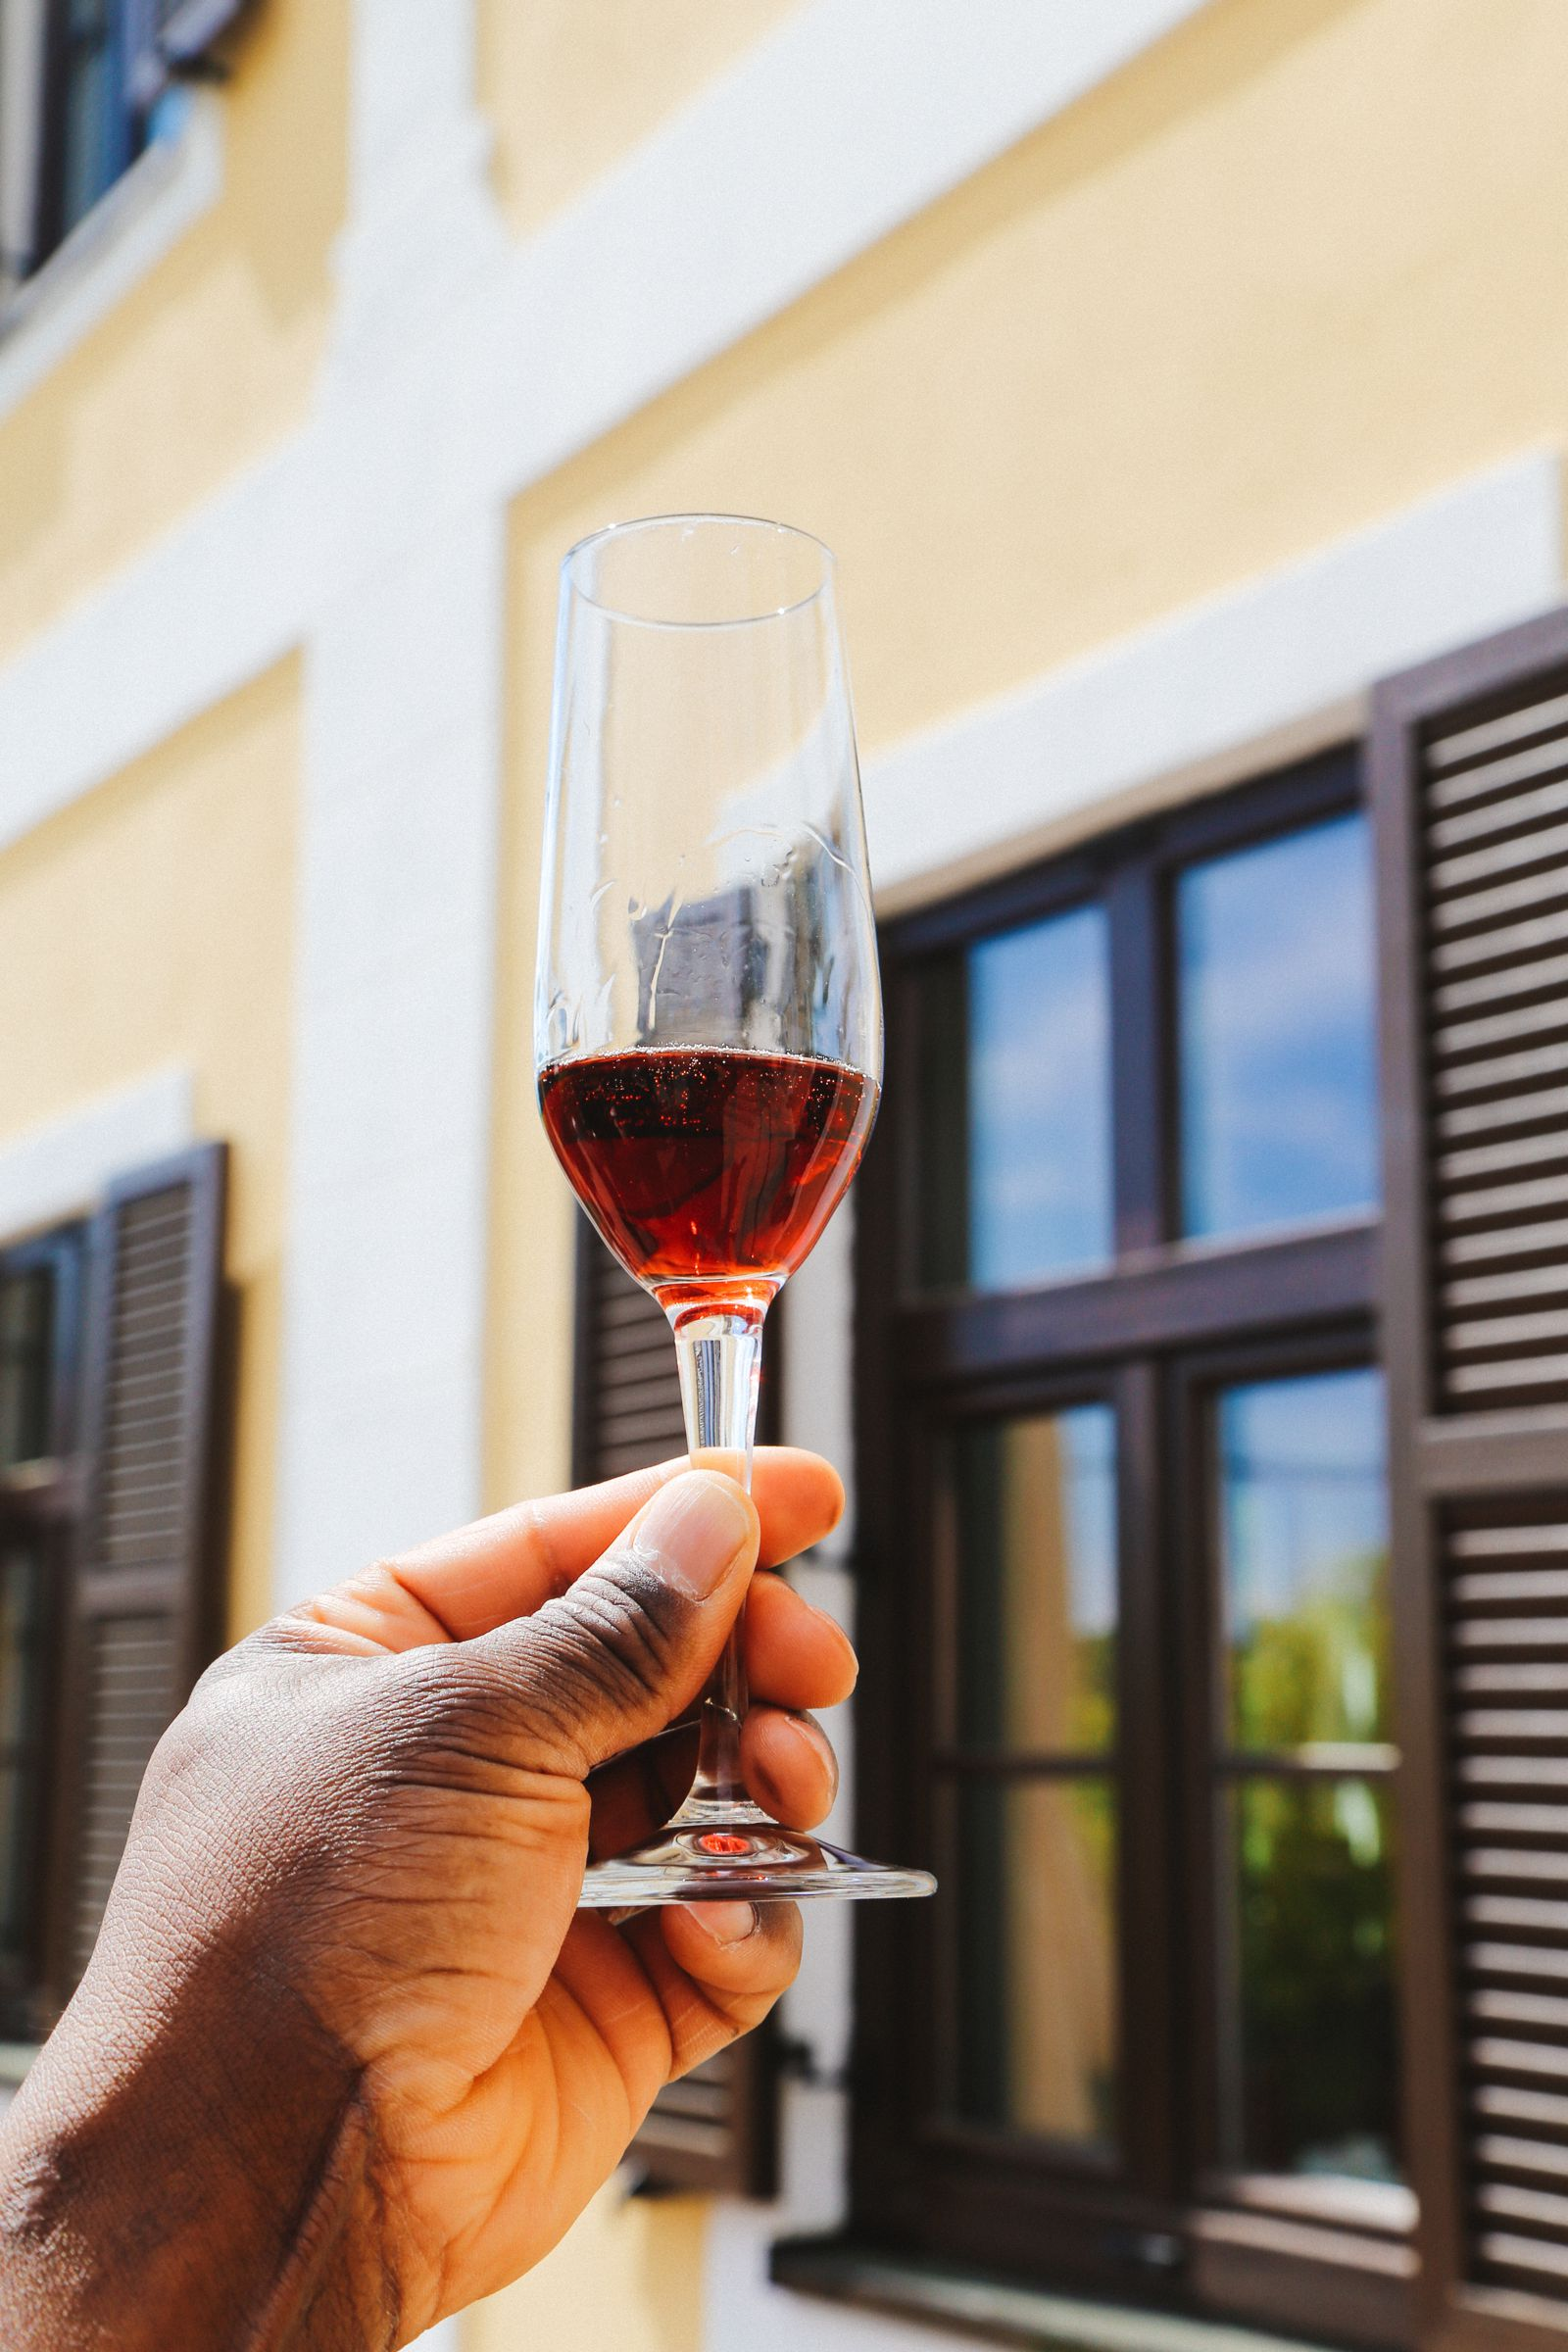 There's A Big Reason You Should Visit Slovenia This Year - The Wine! (55)